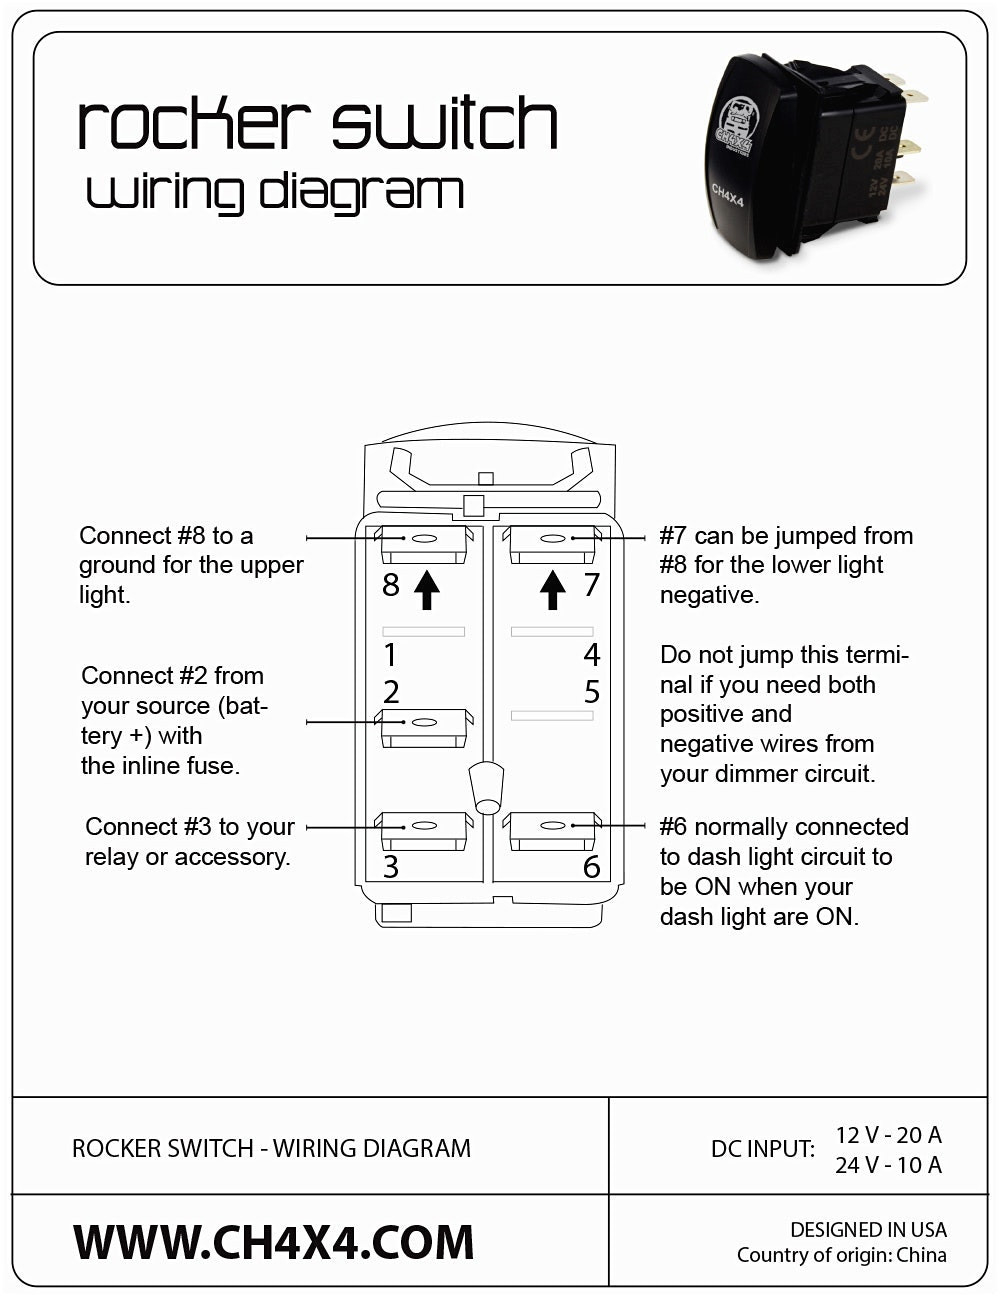 carling technologies rocker switch wiring diagram three way electrical schematic all contura lighted